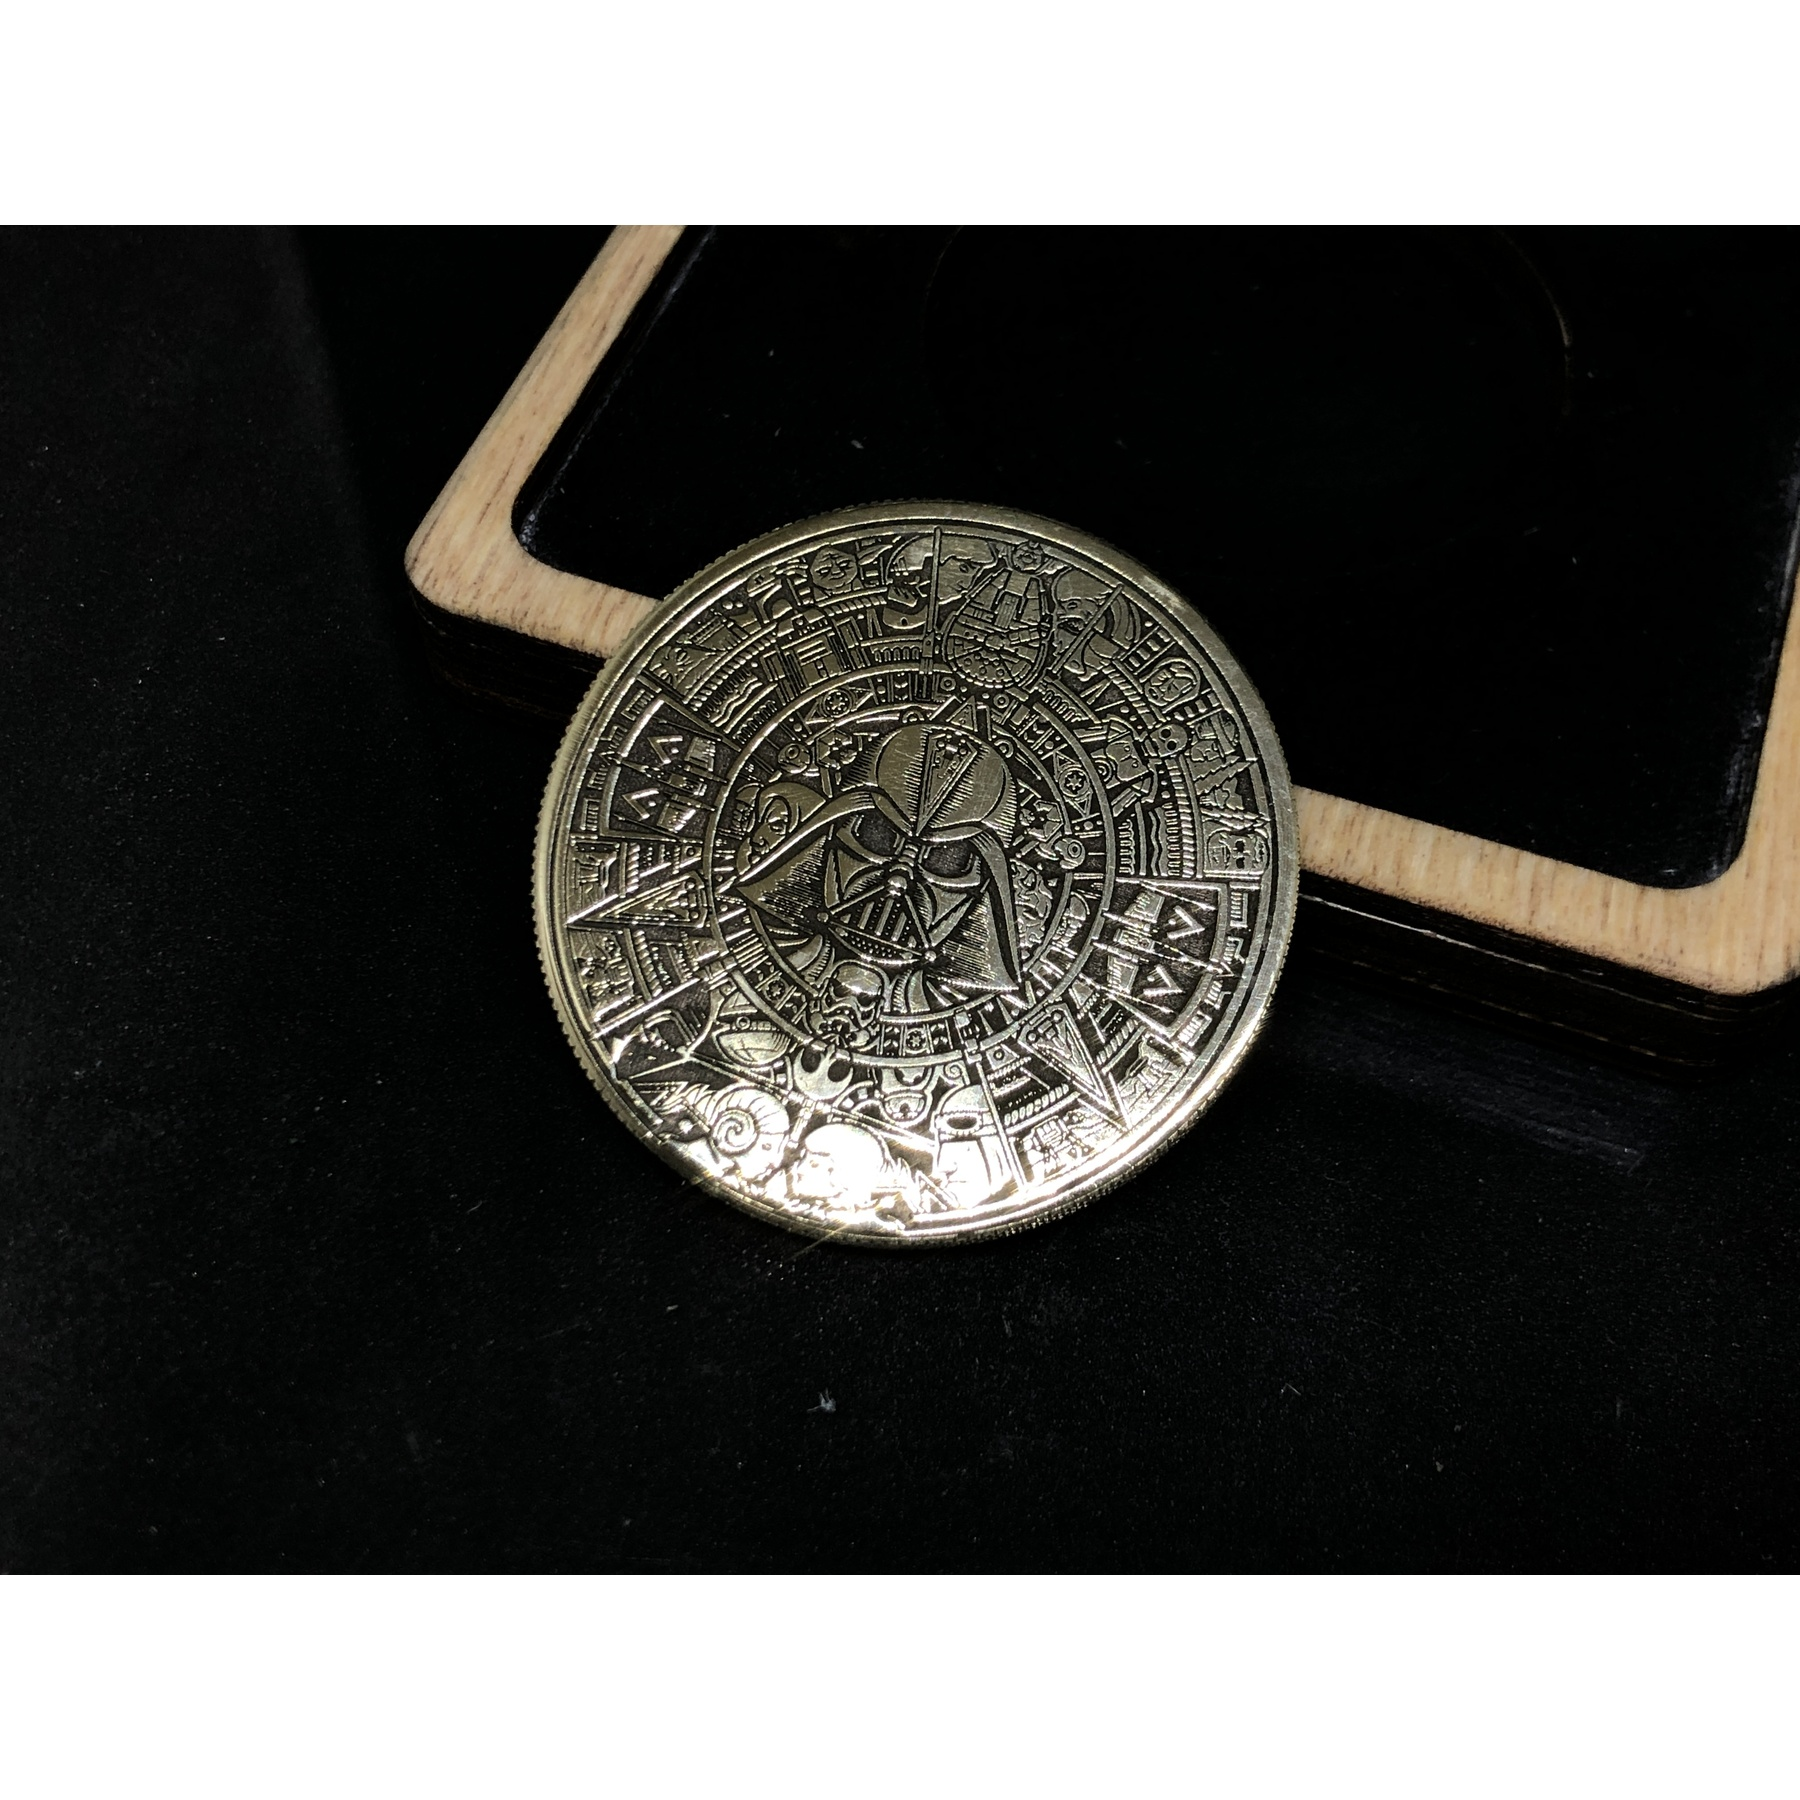 Collectible Coin Brass Engraved Star Wars